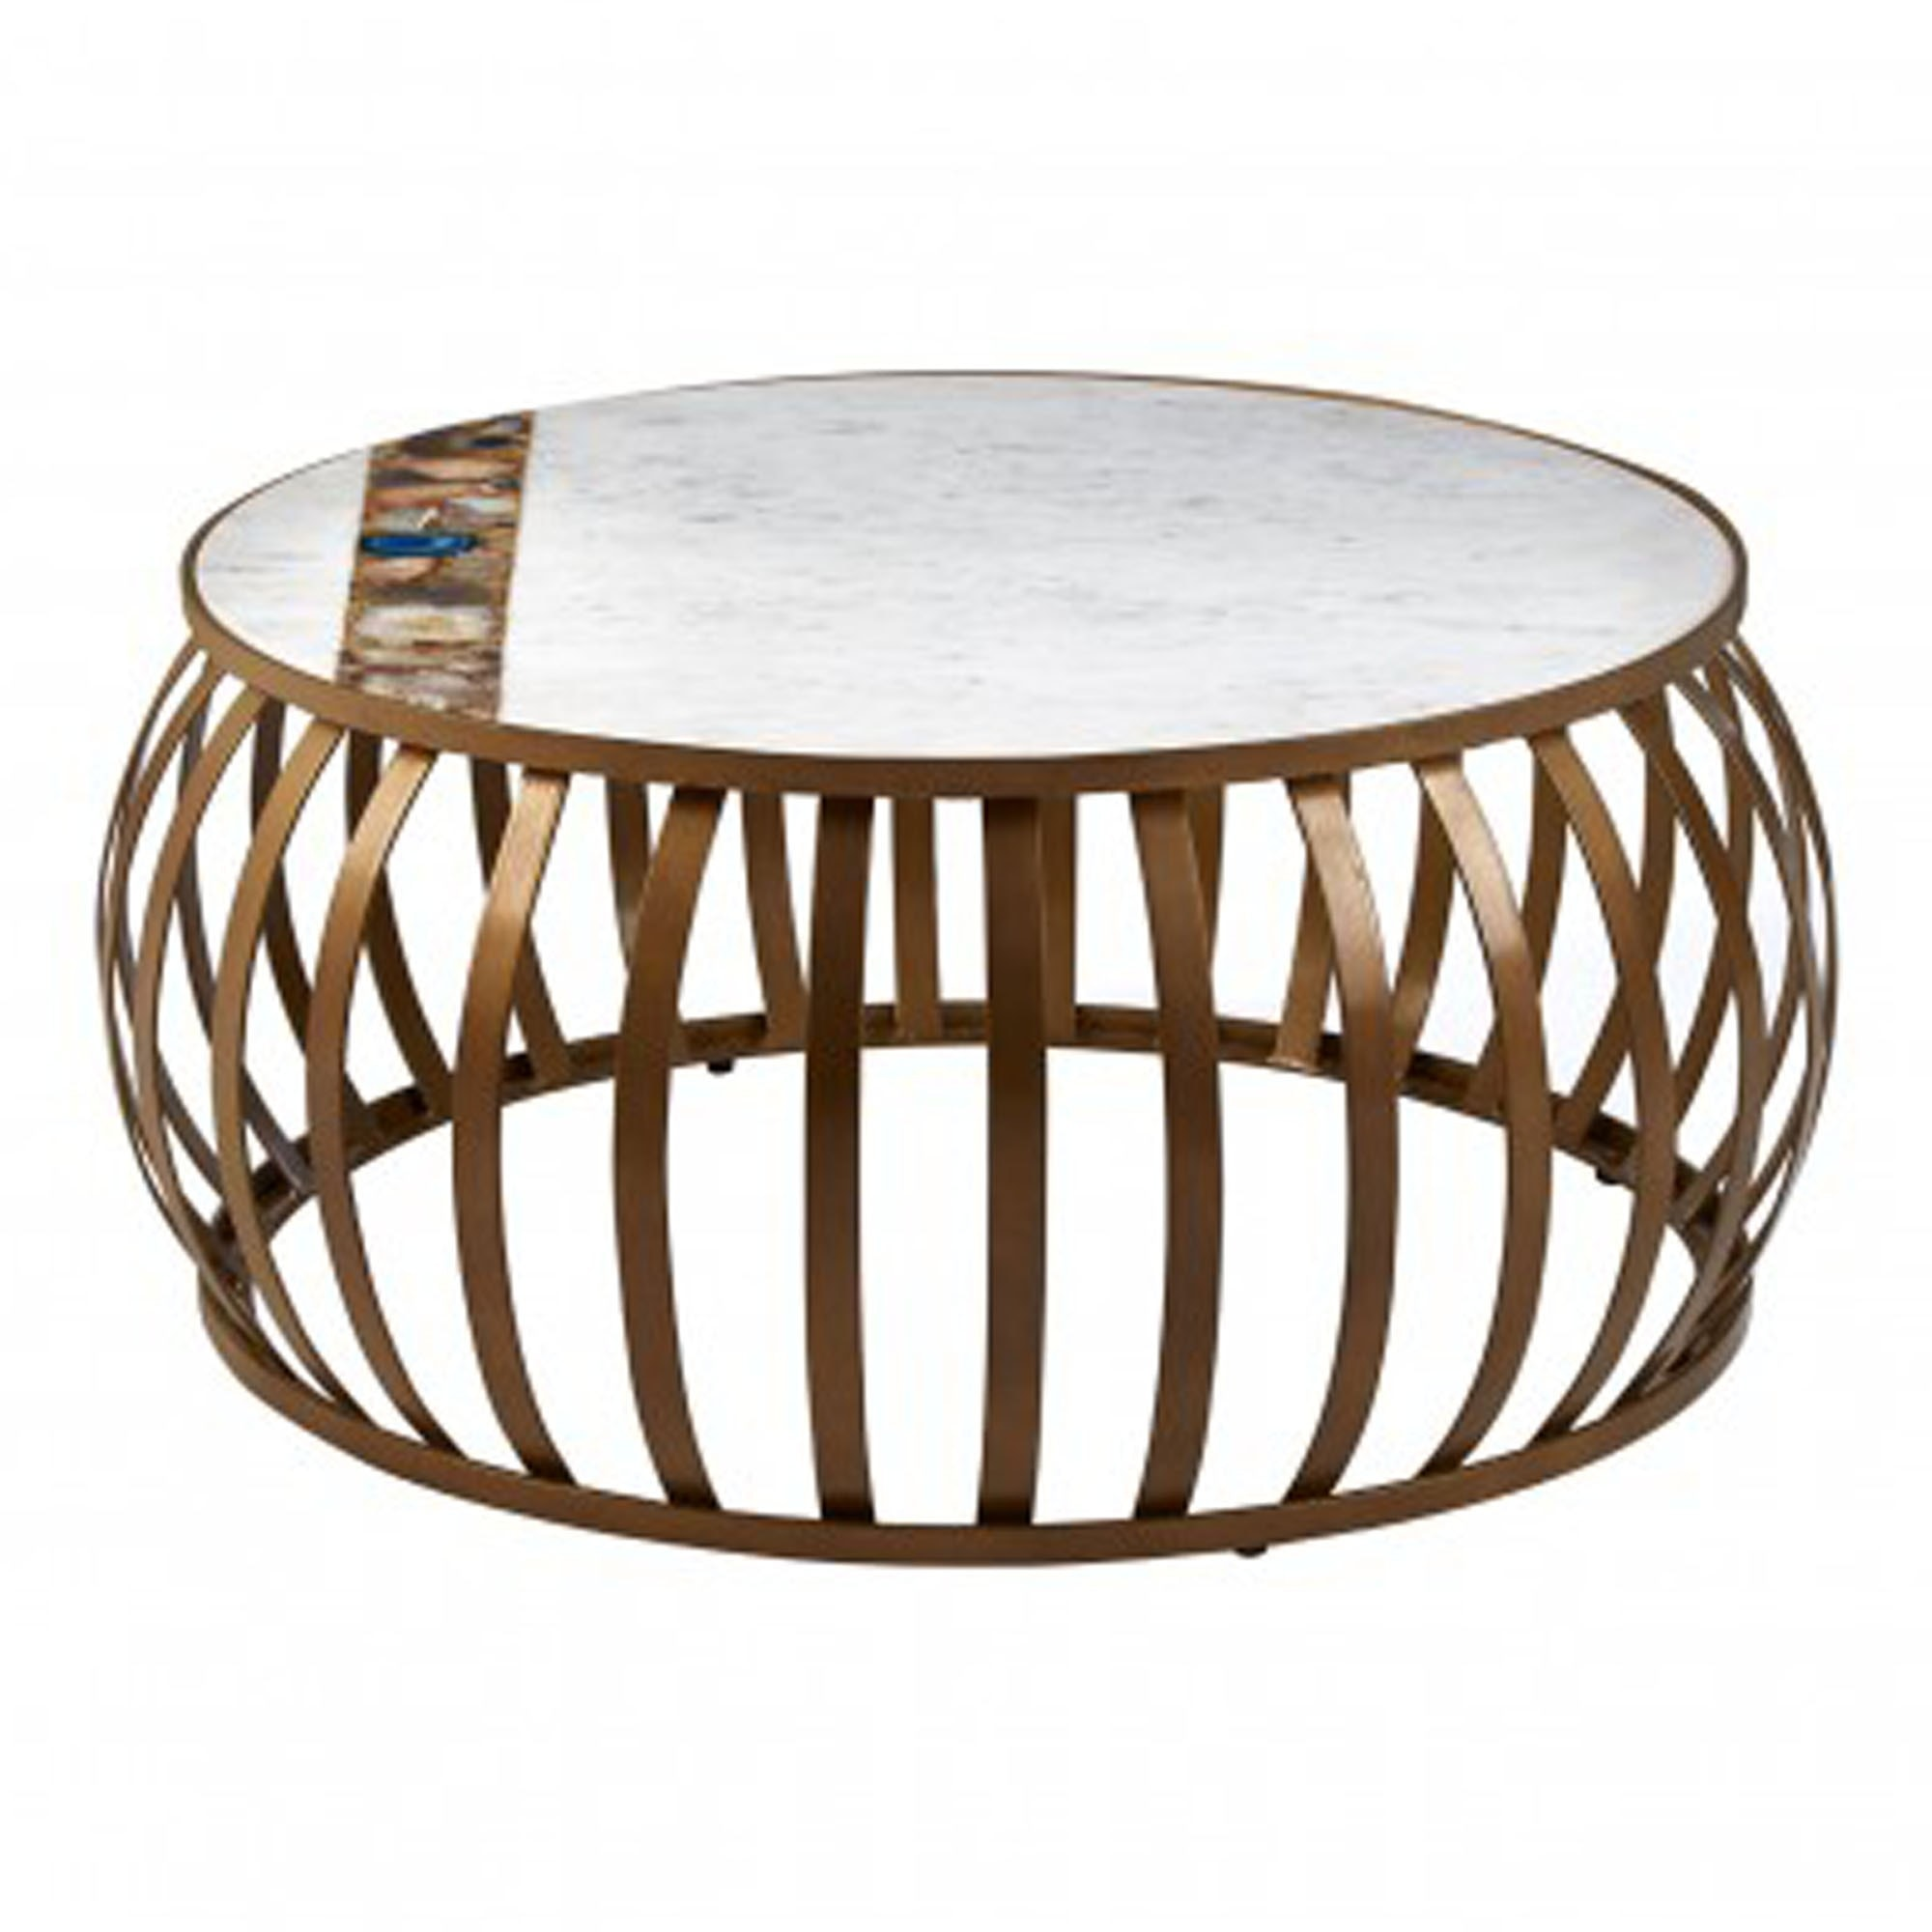 Vizzini Round Coffee Table Modern Furniture Dining Coffee Tables